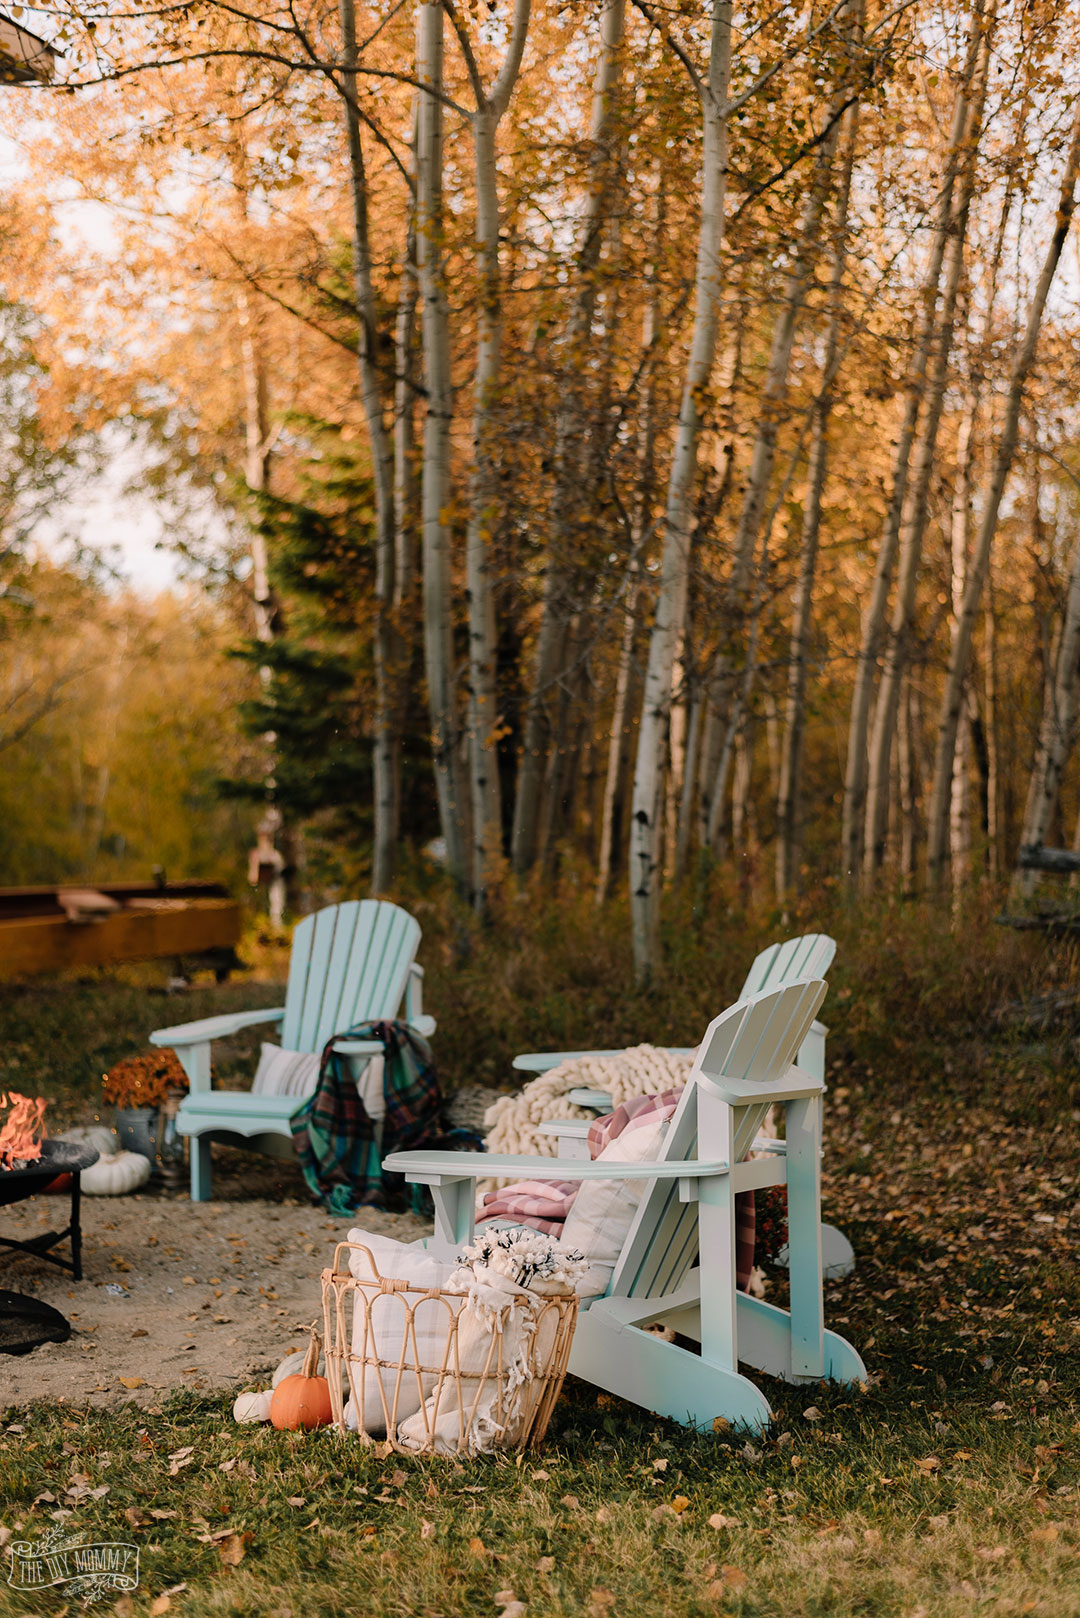 Cozy bakyard fire pit area with DIY Muskoka chairs, upcycled fire pit, s'mores station and cozy textiles for Fall